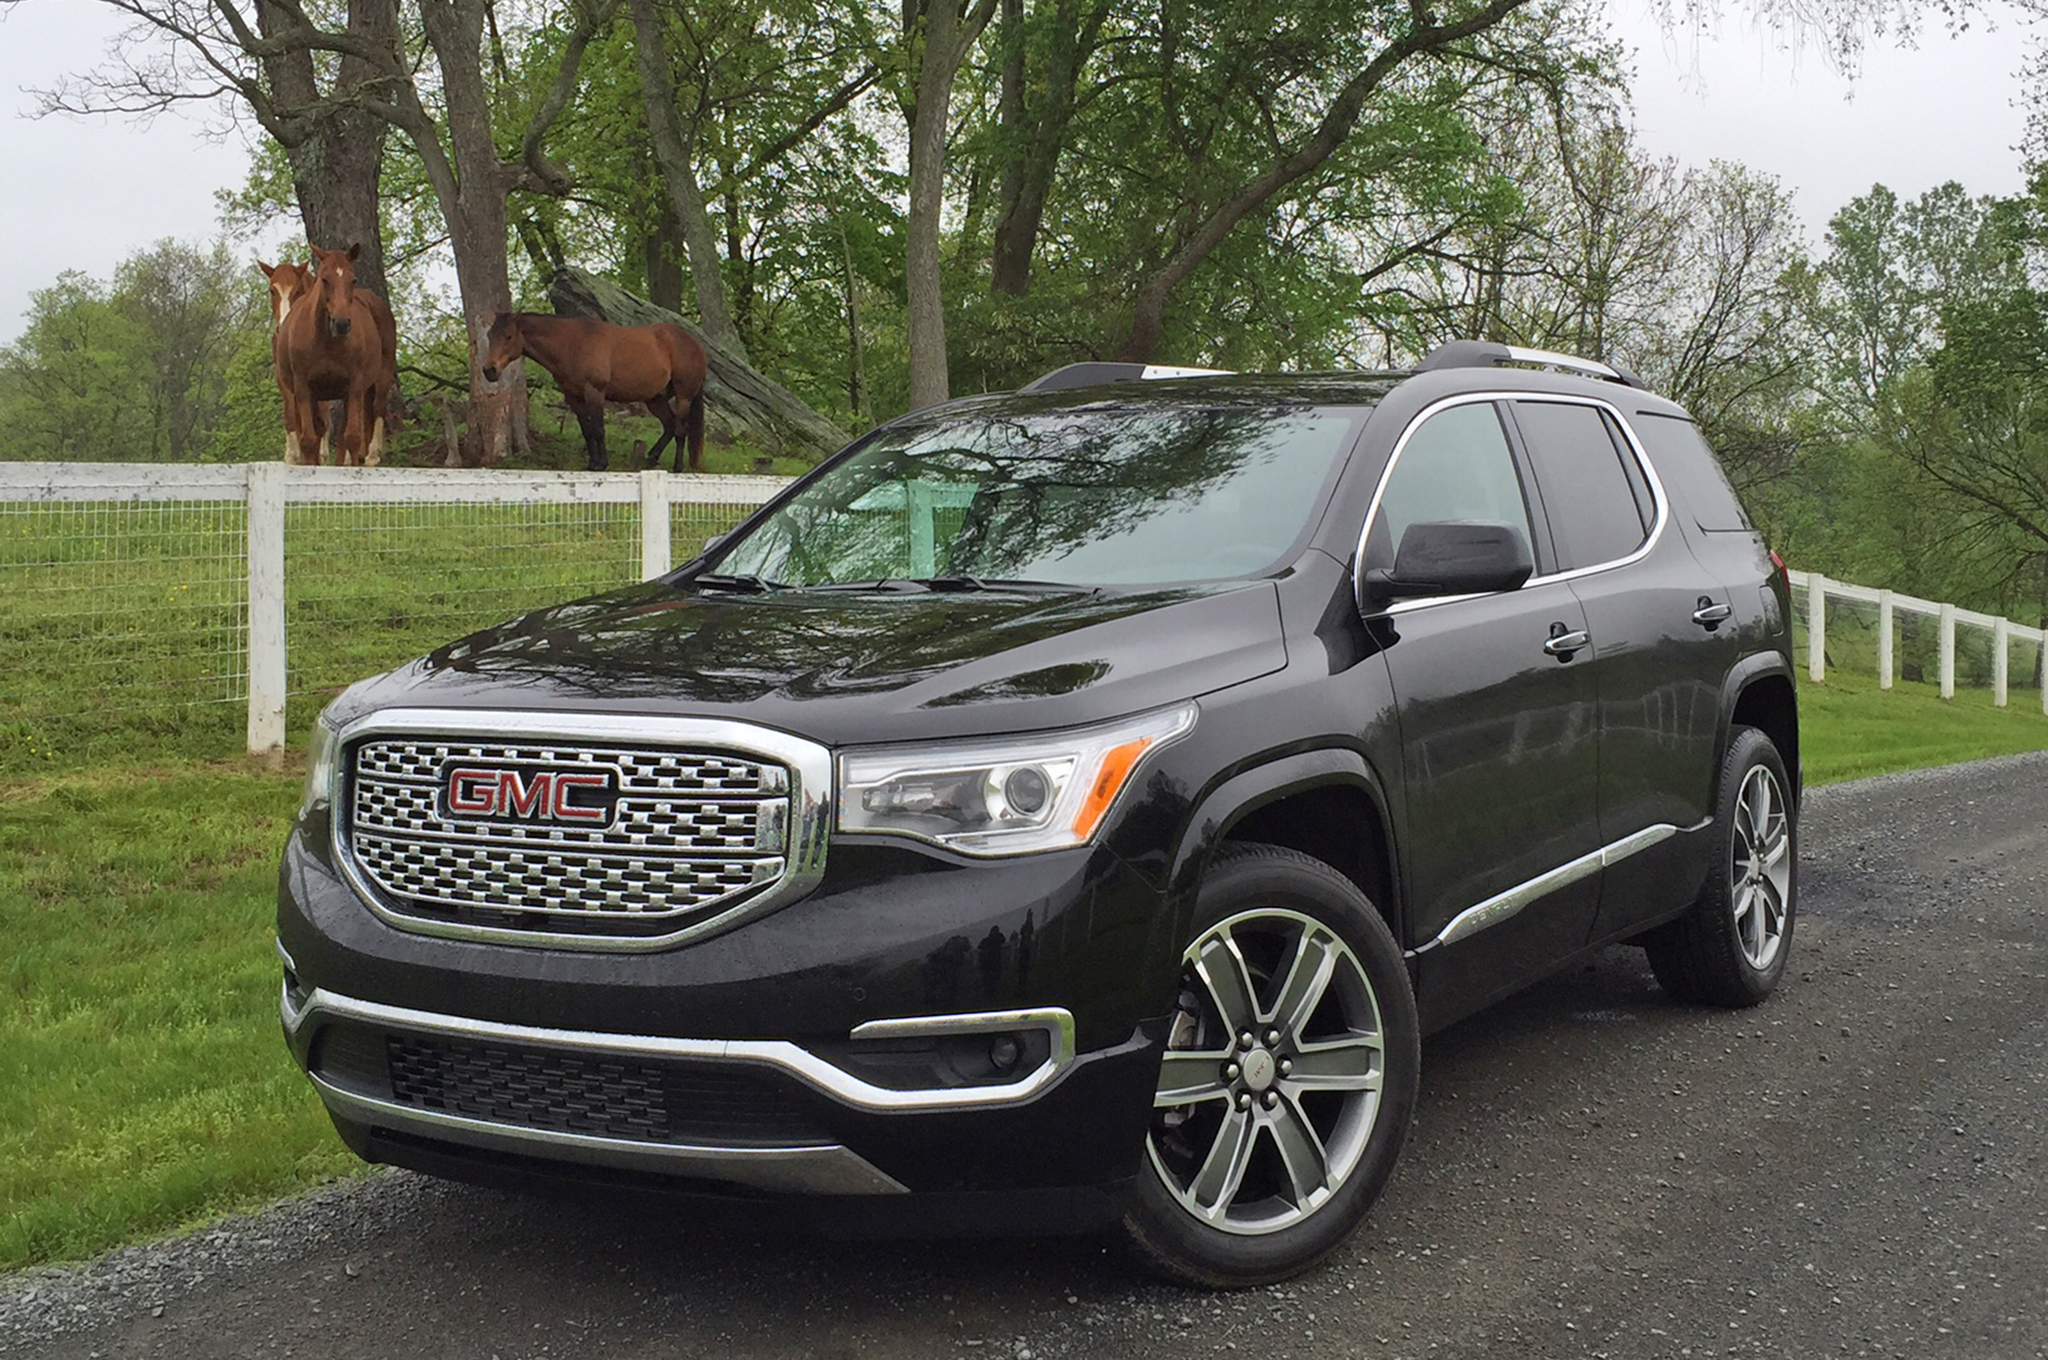 The New Acadia Has Been Put Through a Major Diet Cardinale GMC